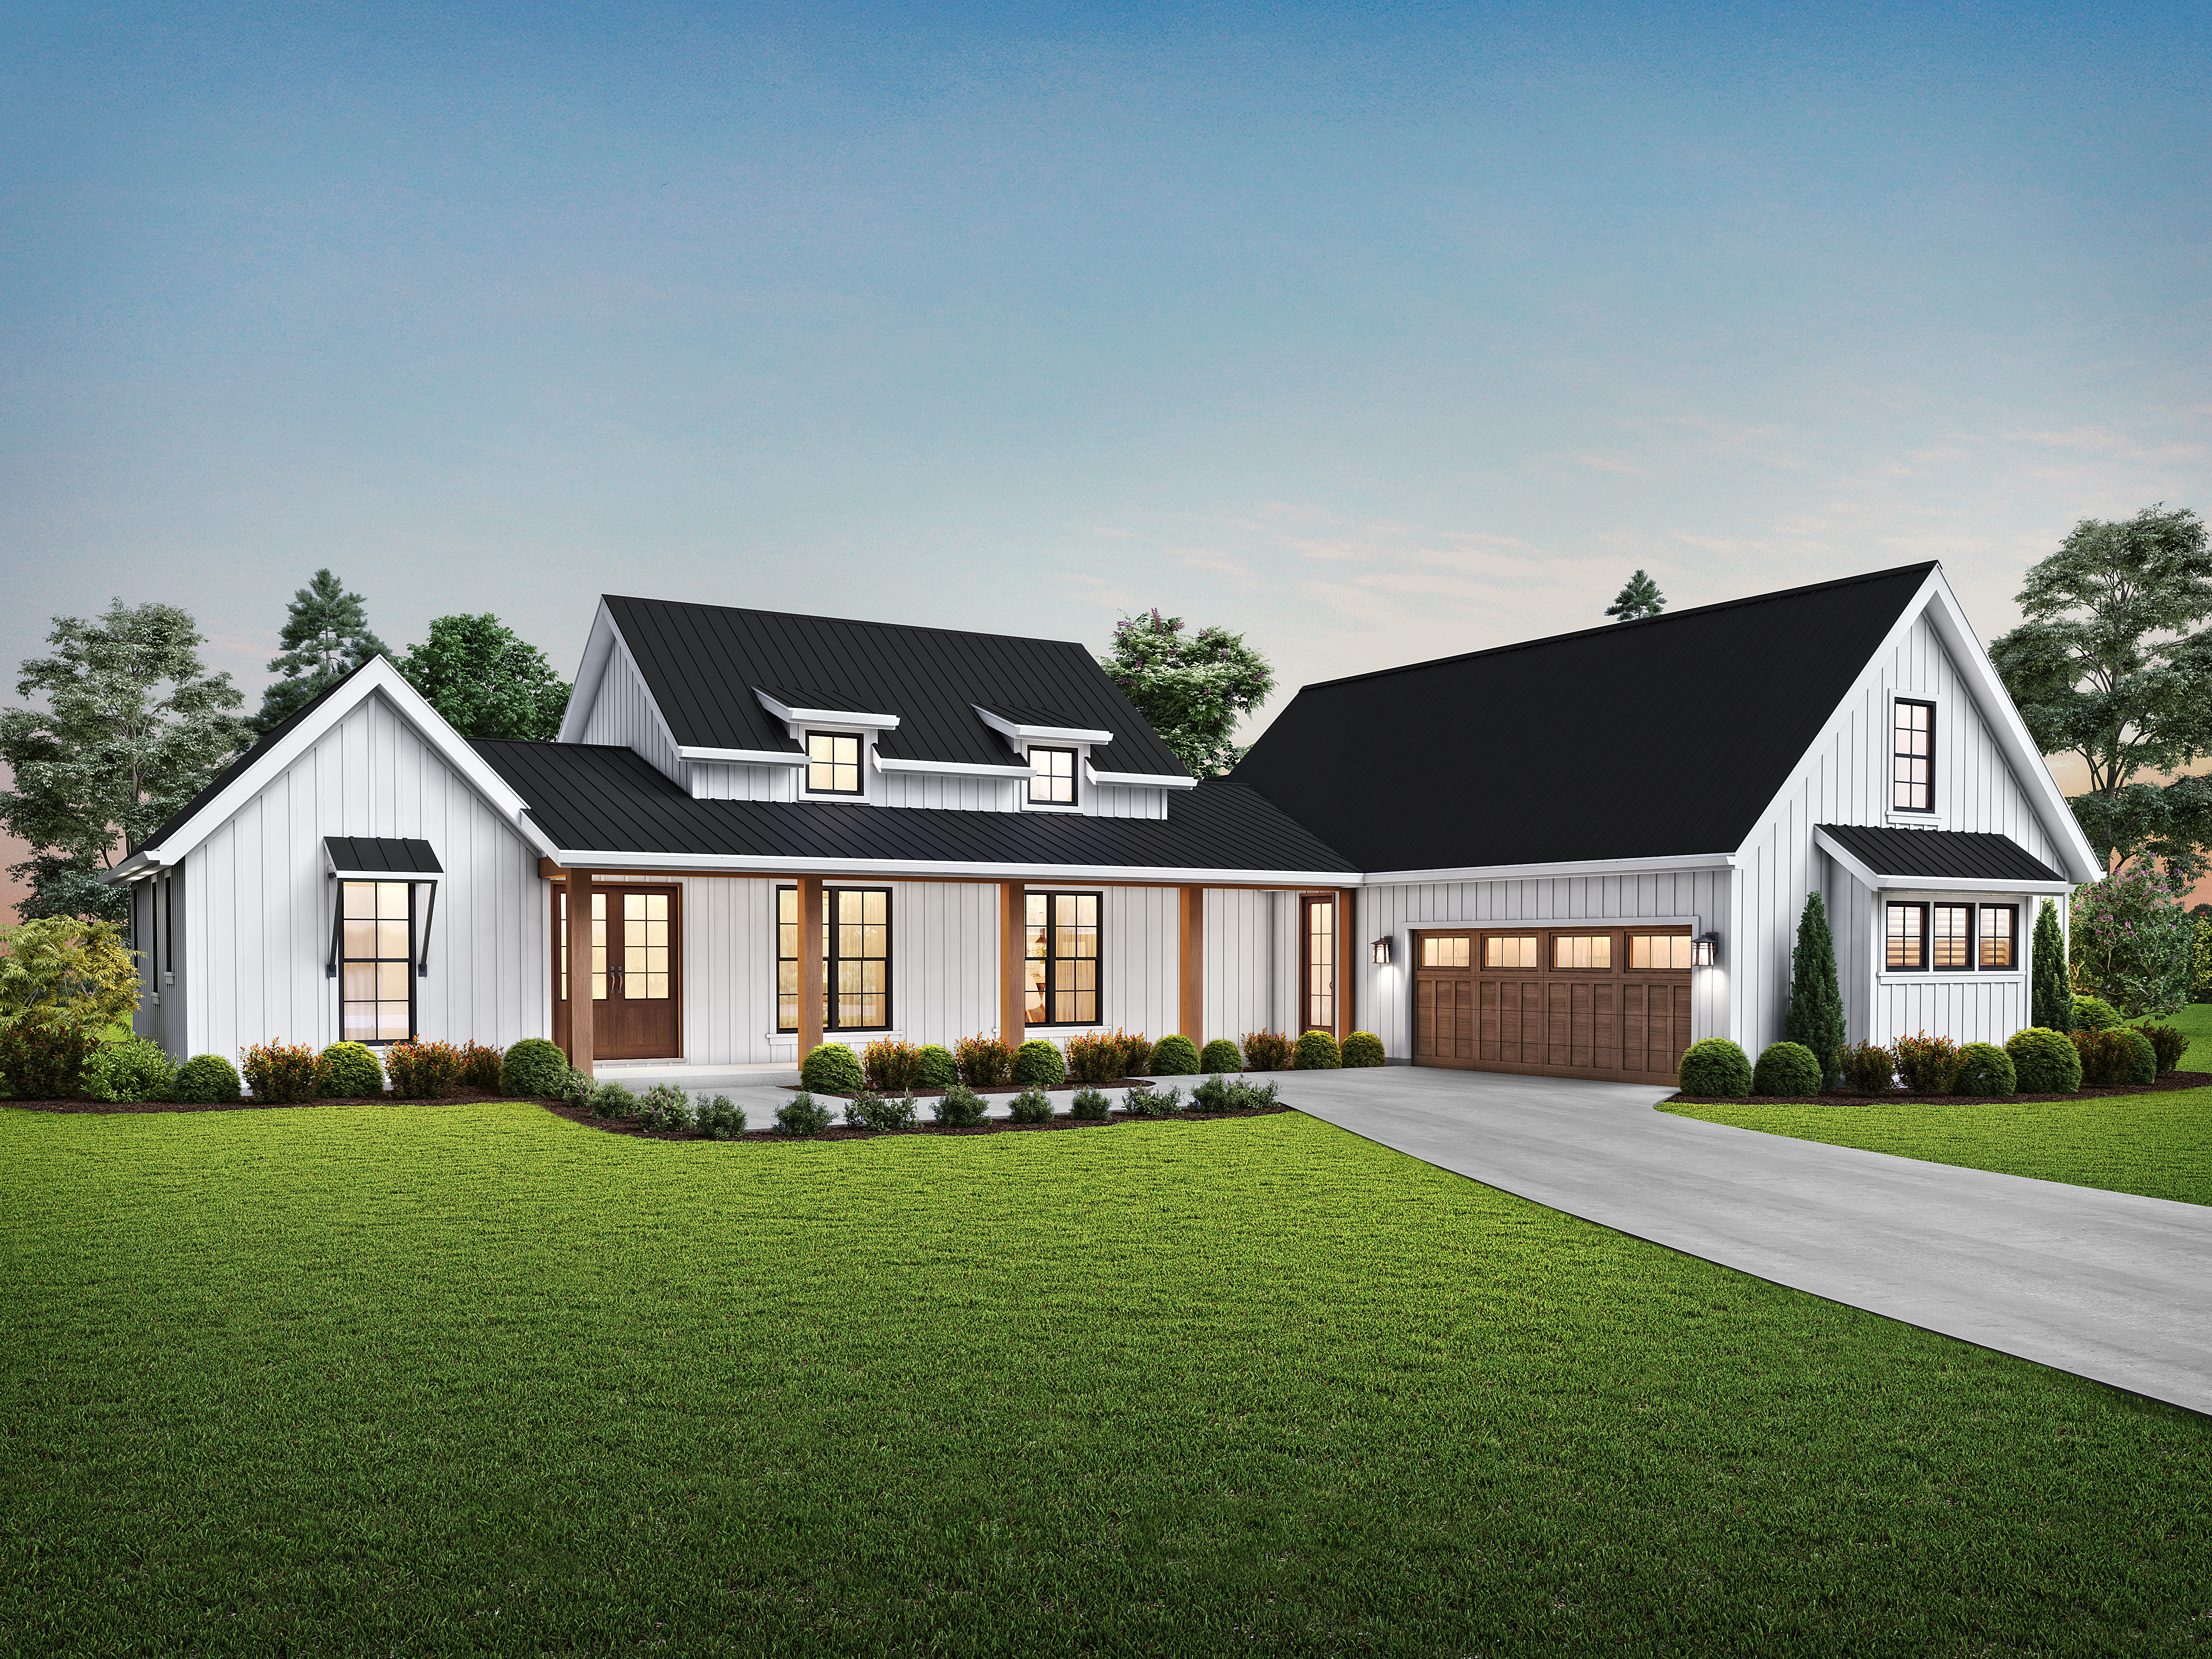 1259a-front-rendering-metal-roof